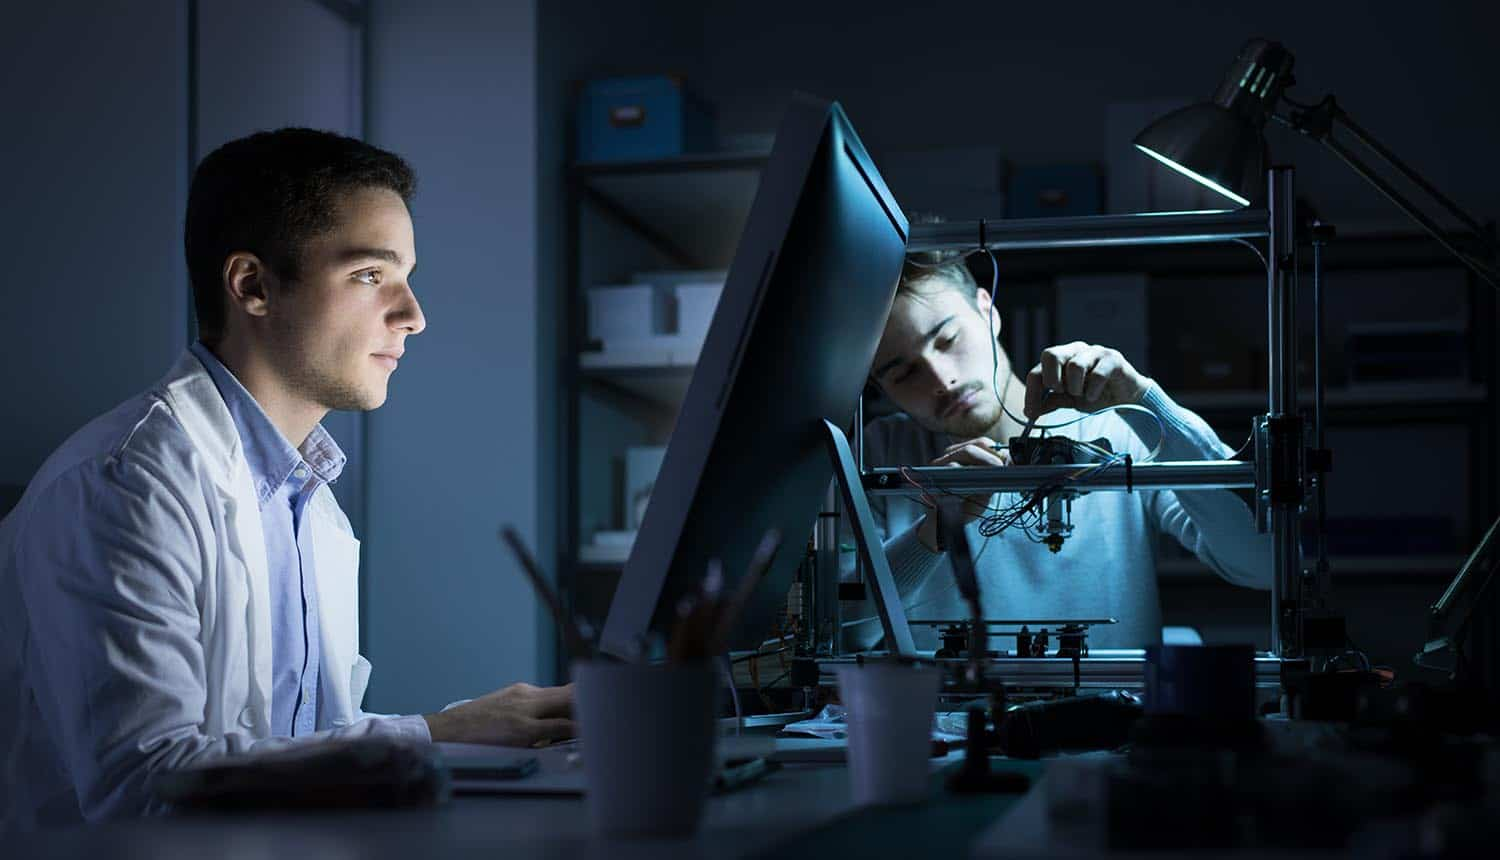 Engineering team working in the lab at night showing continuous testing and automation